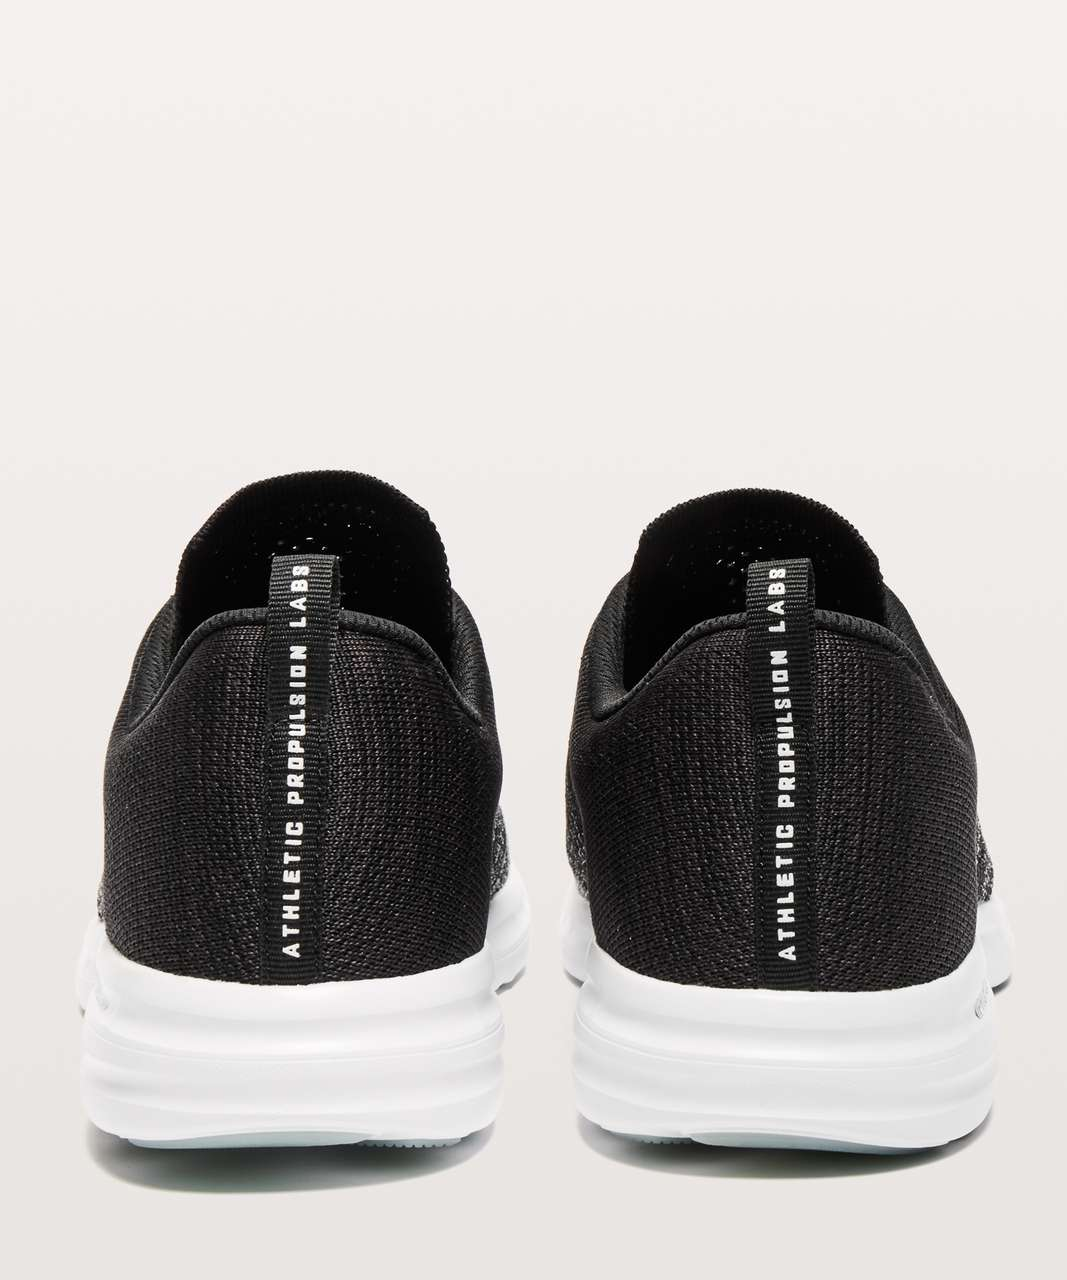 Lululemon Mens TechLoom Pro Shoe - White / Heather Grey / Black